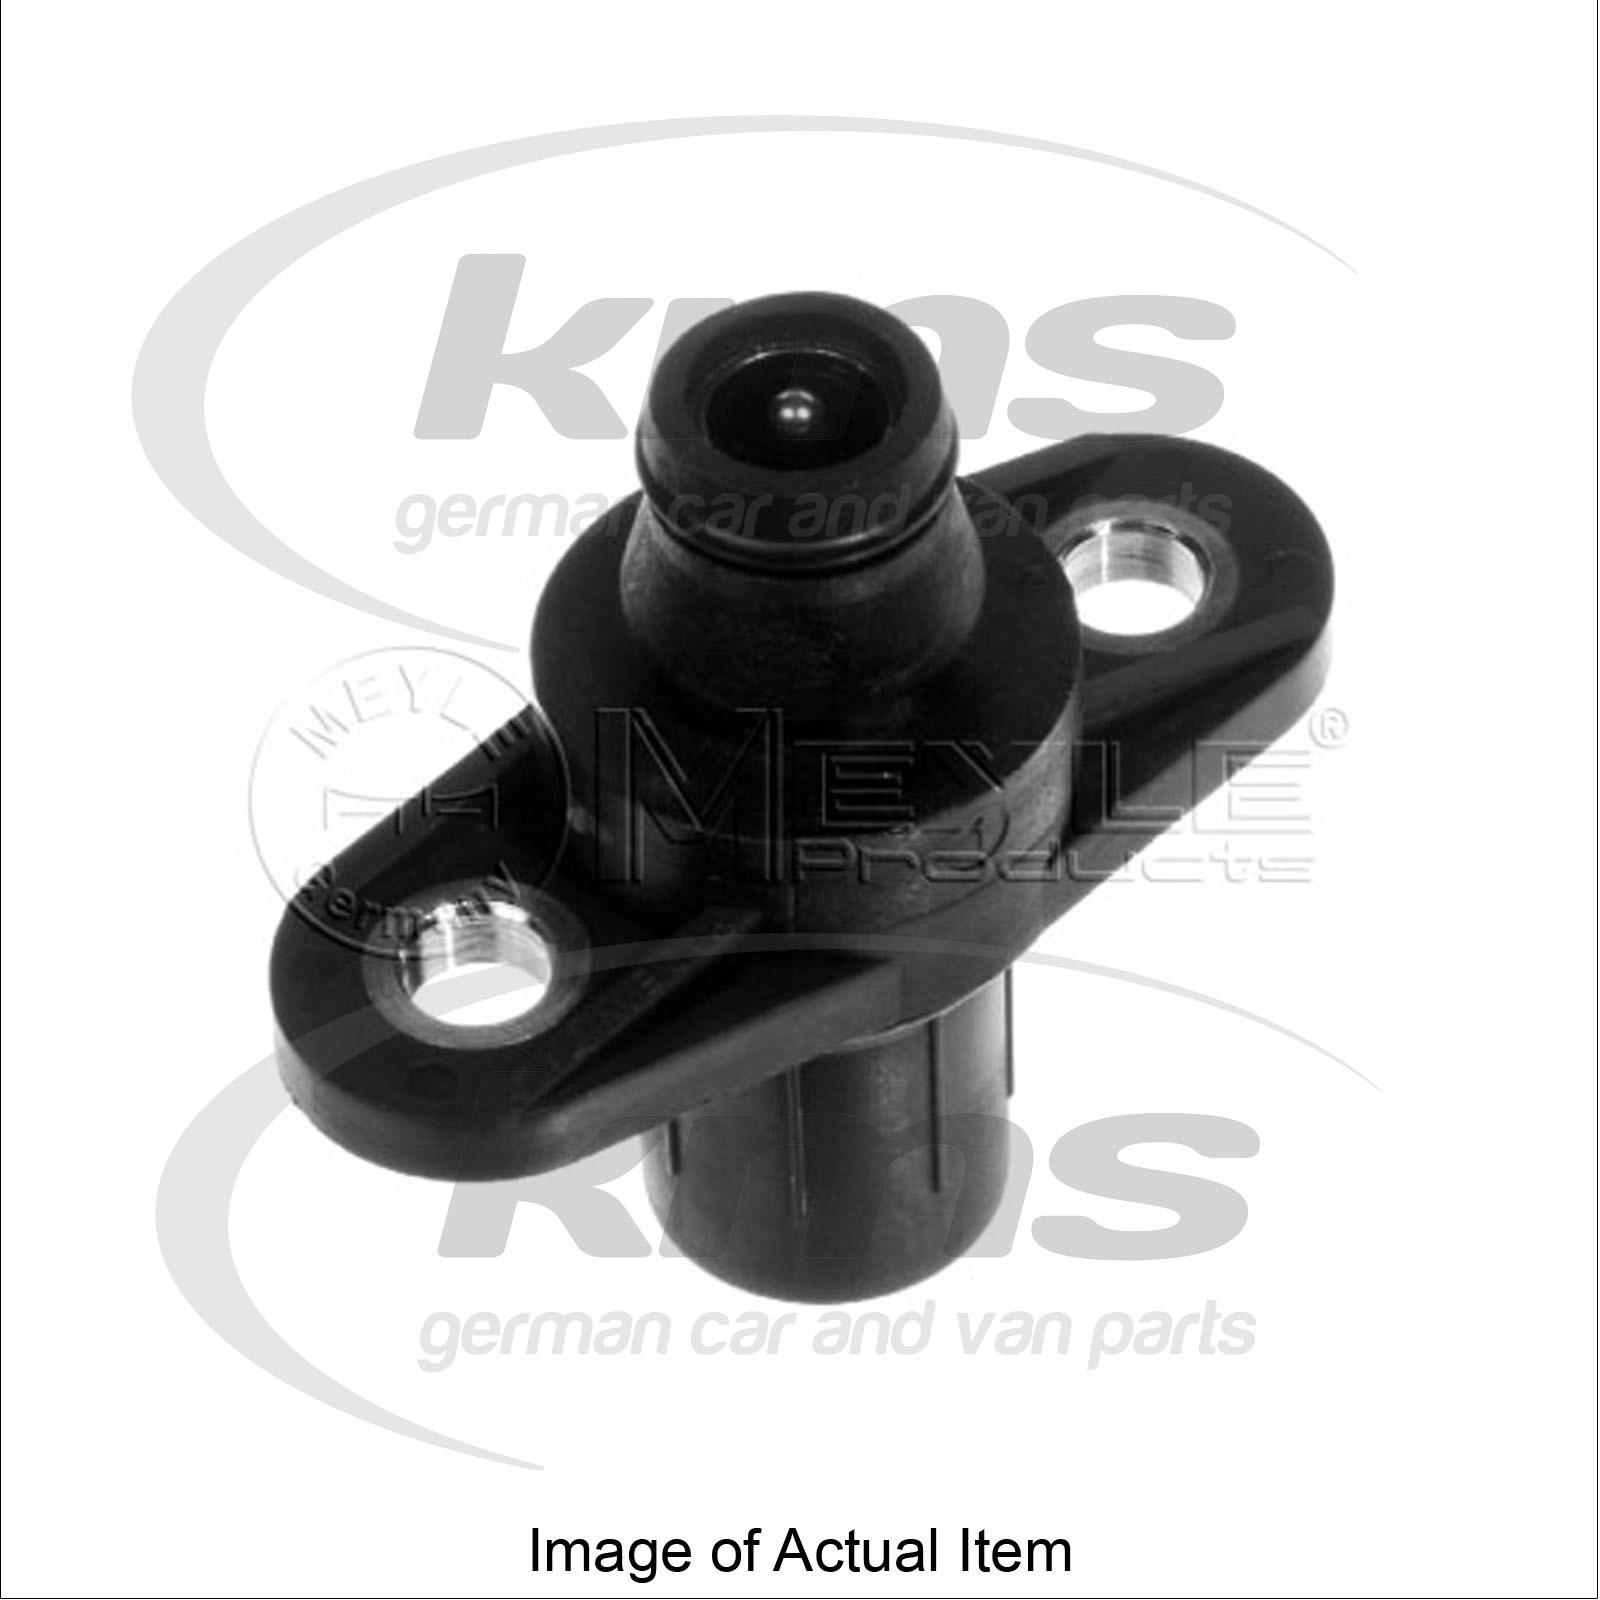 SENSOR For CAMSHAFT POSITION MERCEDES S-CLASS (W140) 400